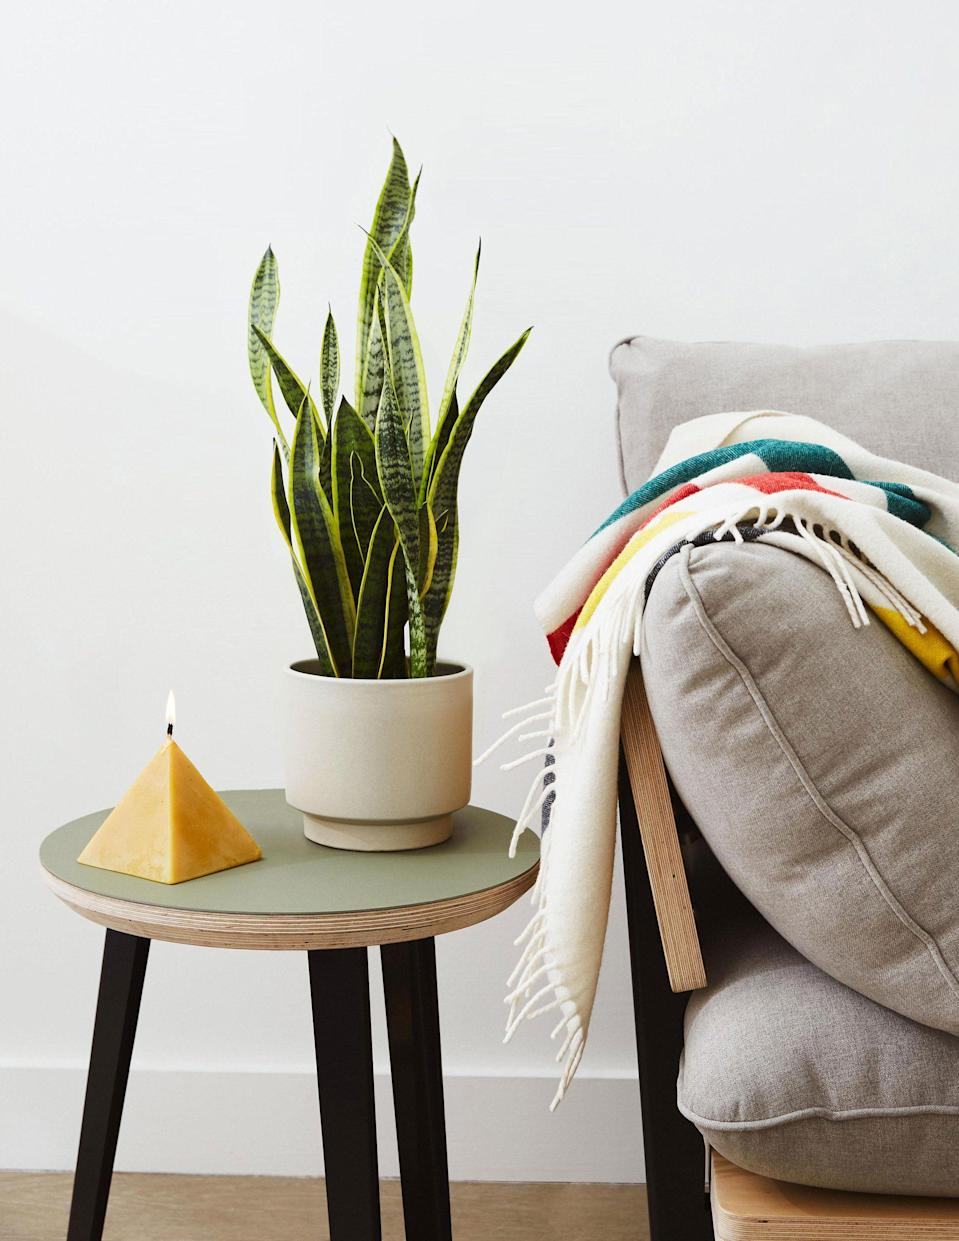 """<p>thesill.com</p><p><a href=""""https://go.redirectingat.com?id=74968X1596630&url=https%3A%2F%2Fwww.thesill.com%2Fproducts%2Flow-light-potted-plants-monthly-subscription-box&sref=https%3A%2F%2Fwww.redbookmag.com%2Flife%2Fg34730157%2Fbest-subscription-boxes%2F"""" rel=""""nofollow noopener"""" target=""""_blank"""" data-ylk=""""slk:Shop Now"""" class=""""link rapid-noclick-resp"""">Shop Now</a></p><p>Have a less-than-green thumb, and need semi-constant plant replacement? Or maybe just a desire to grow your indoor garden? The Sill's """"Low Light Plants"""" subscription is the answer. The hip New York plant shop sends one, low-light tolerant plant per month, hand-potted in an earthenware pot. (Yes, you get to choose the color of the pot.) For those with slightly greener thumbs, they also offer subscriptions for first-time plant owners, medium-sized plants, and pet-friendly plants. </p><p><em>$42 per month.</em> </p>"""